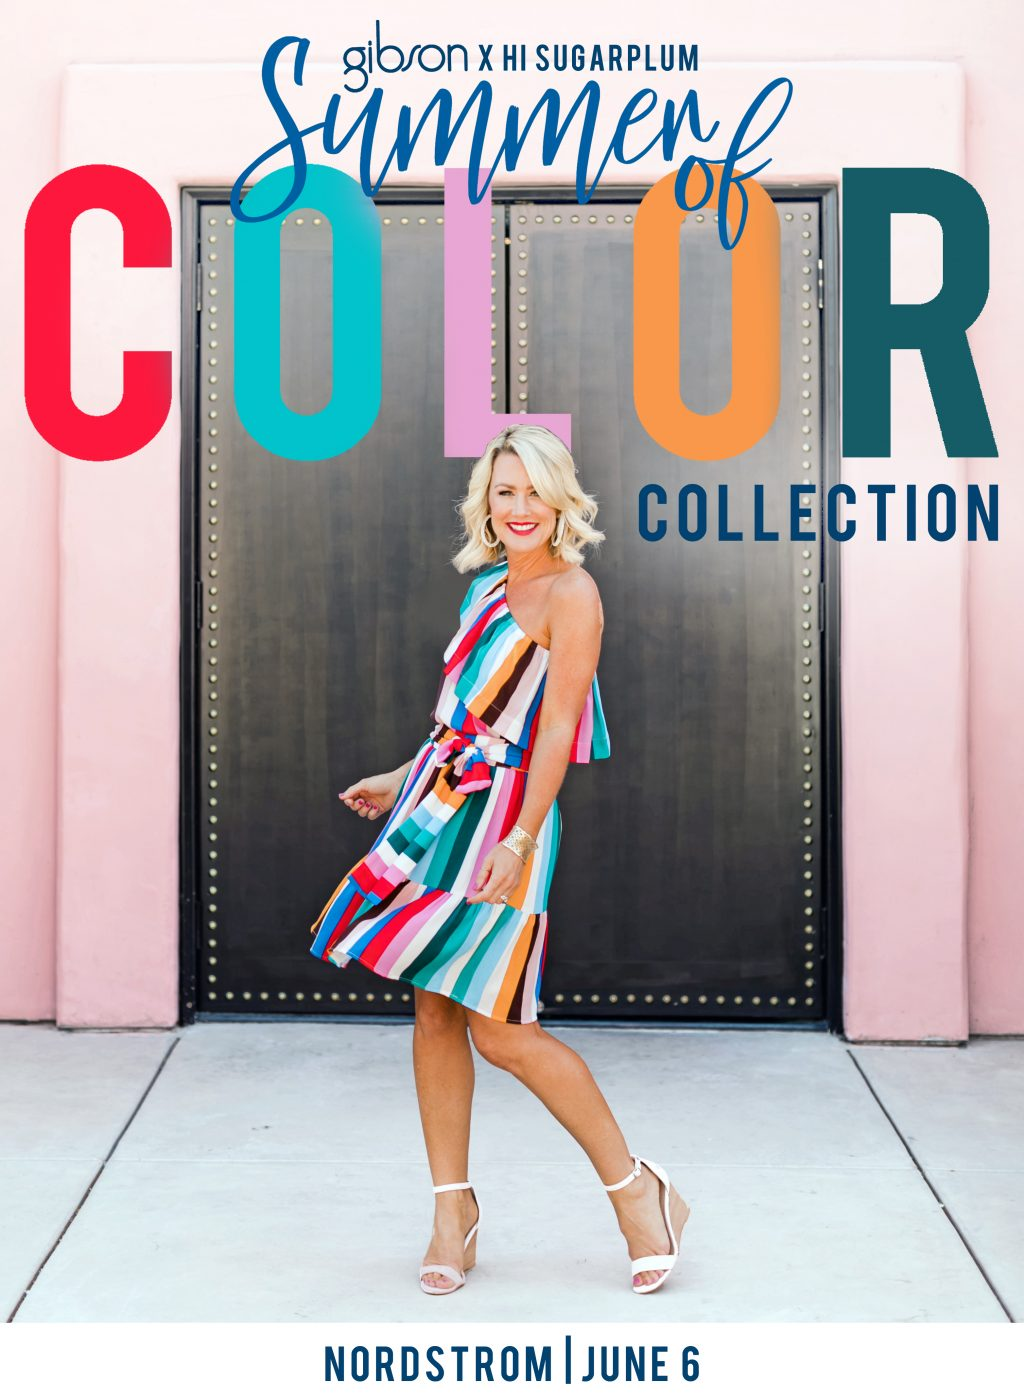 gibson x hi sugarplum summer of color collection